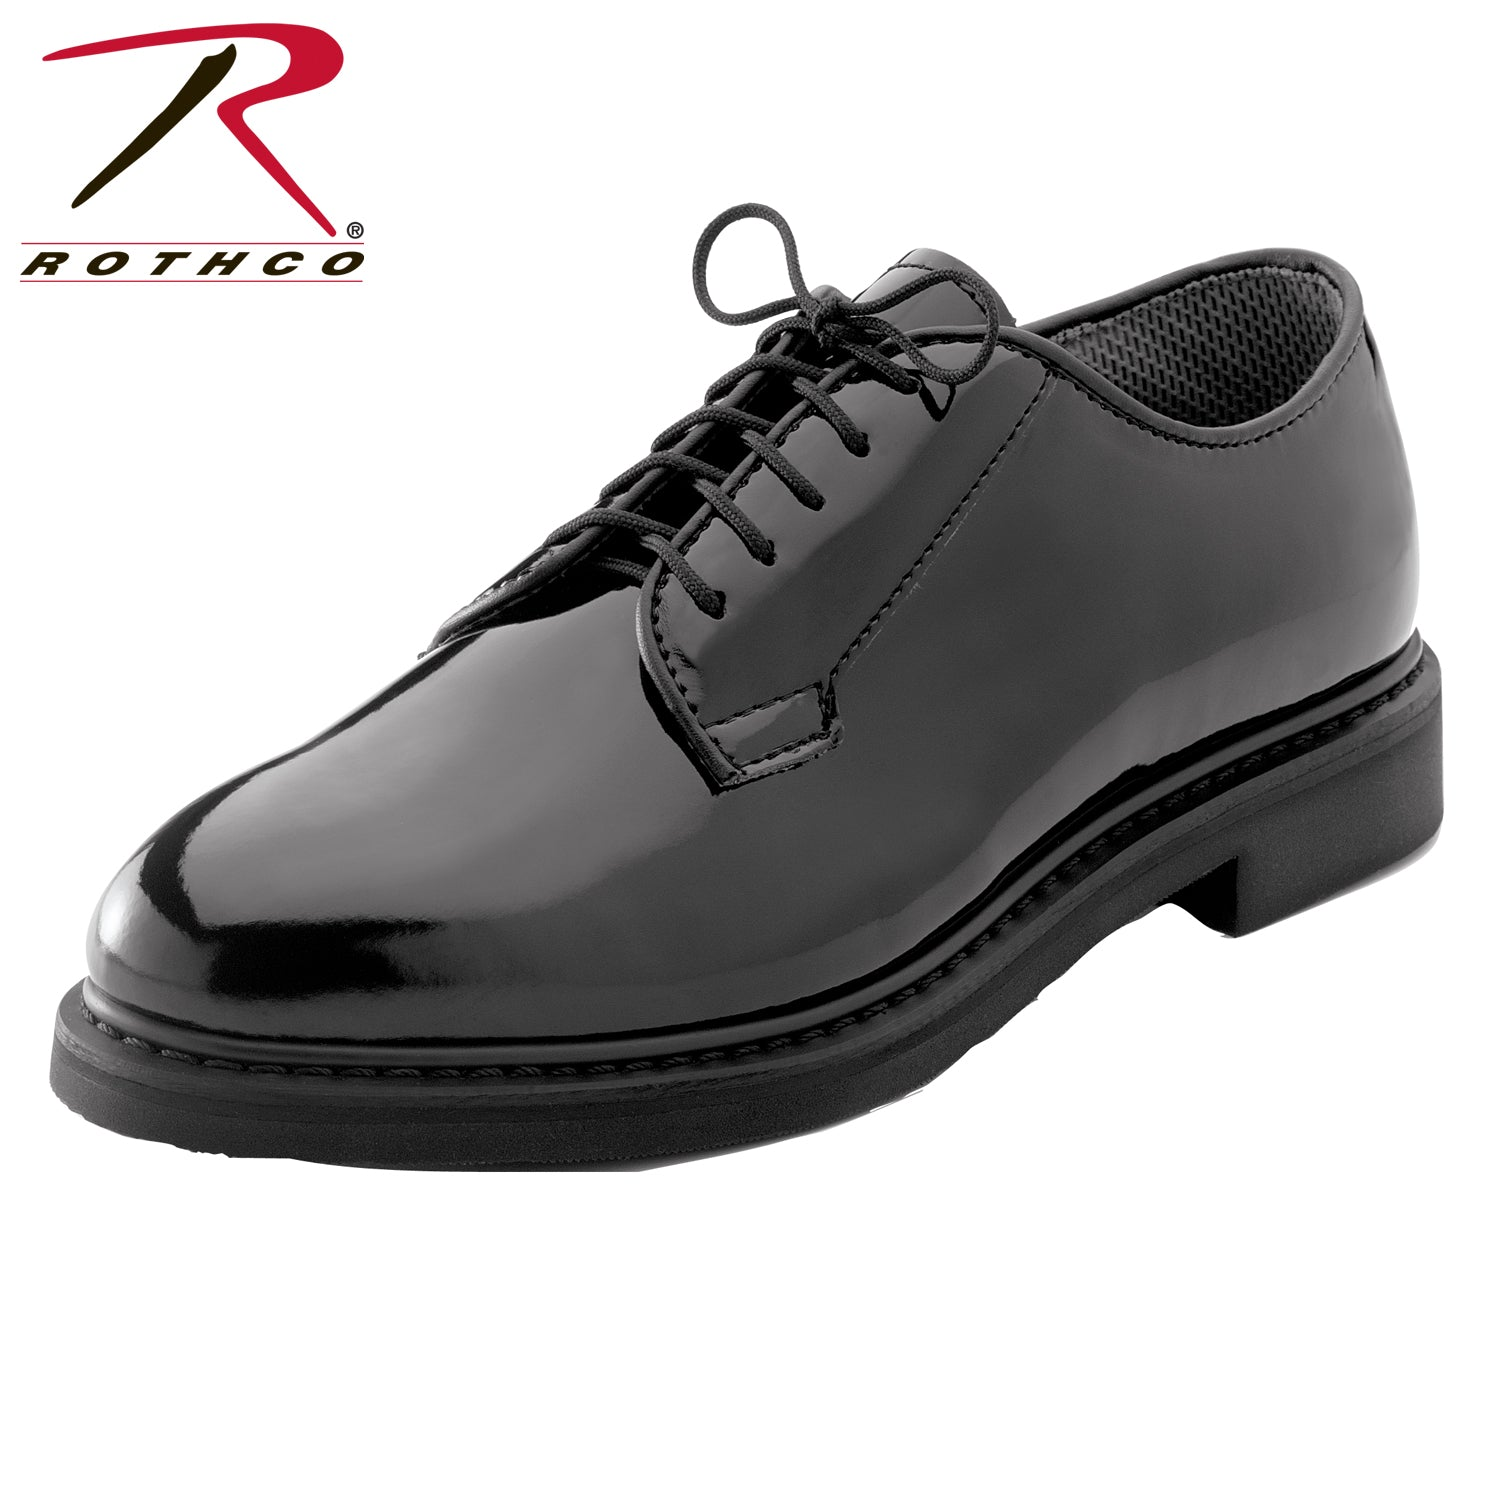 Rothco Uniform Hi-Gloss Oxford Dress Shoe - red-diamond-uniform-police-supply